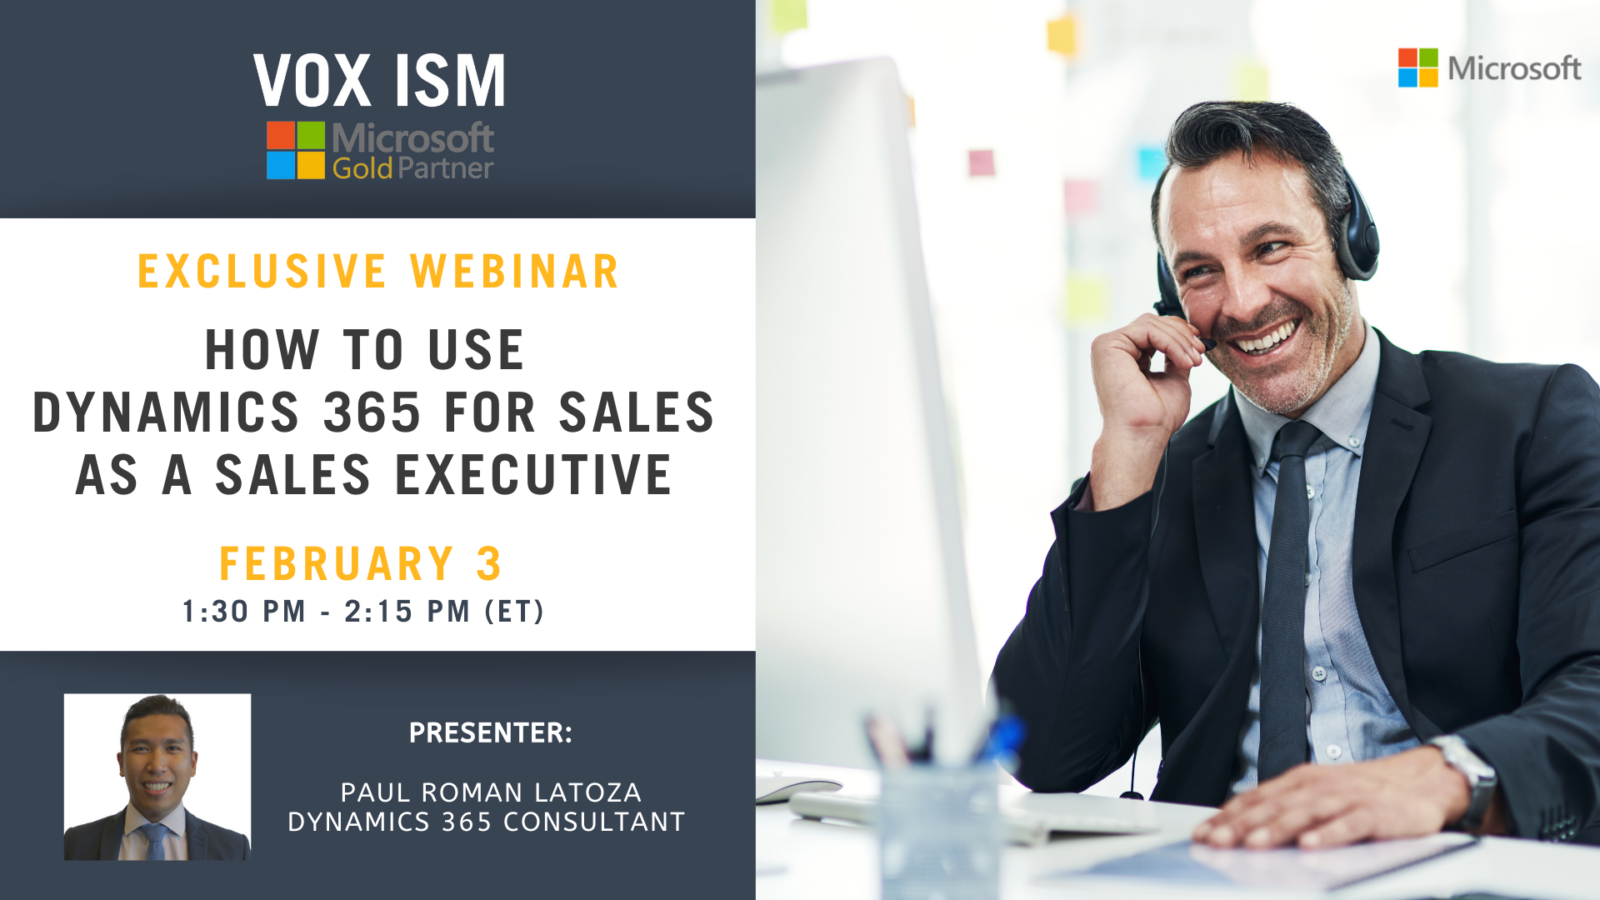 How To Use Dynamics 365 for Sales As A Sales Executive - February 3 - Webinar